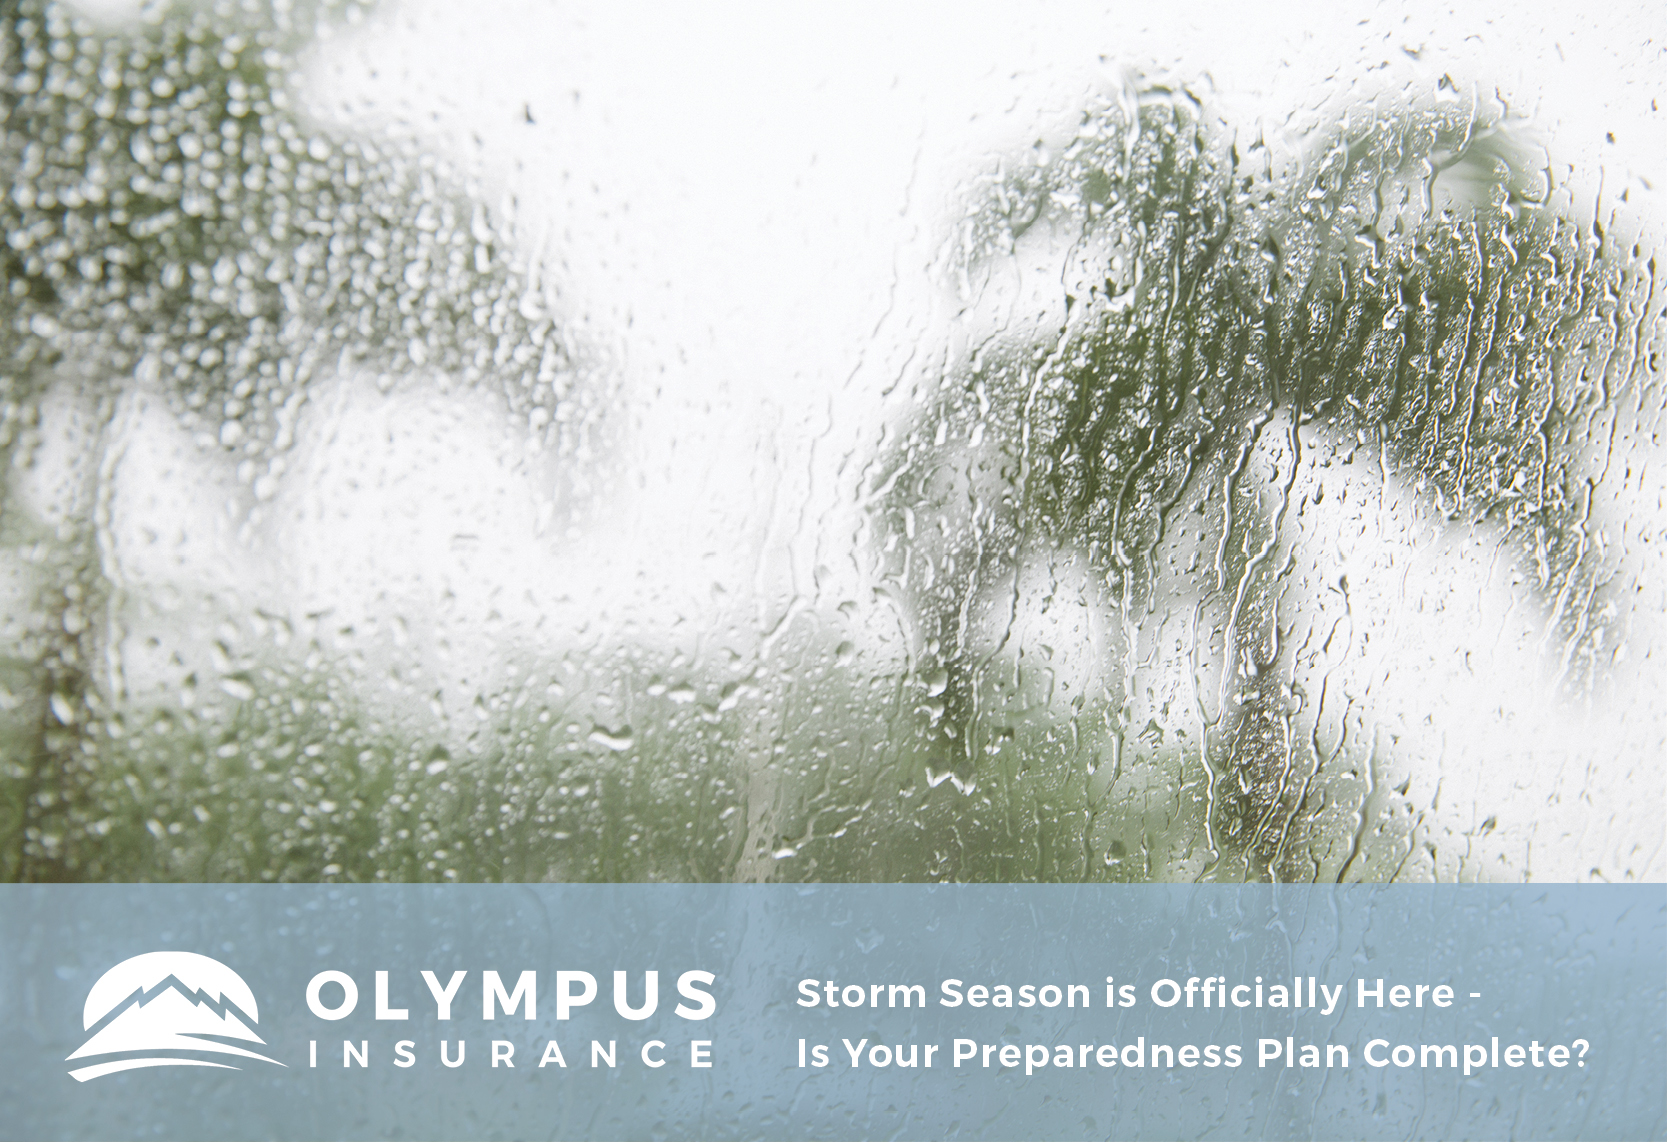 Storm Season is Officially Here - Is Your Preparedness Plan Complete?